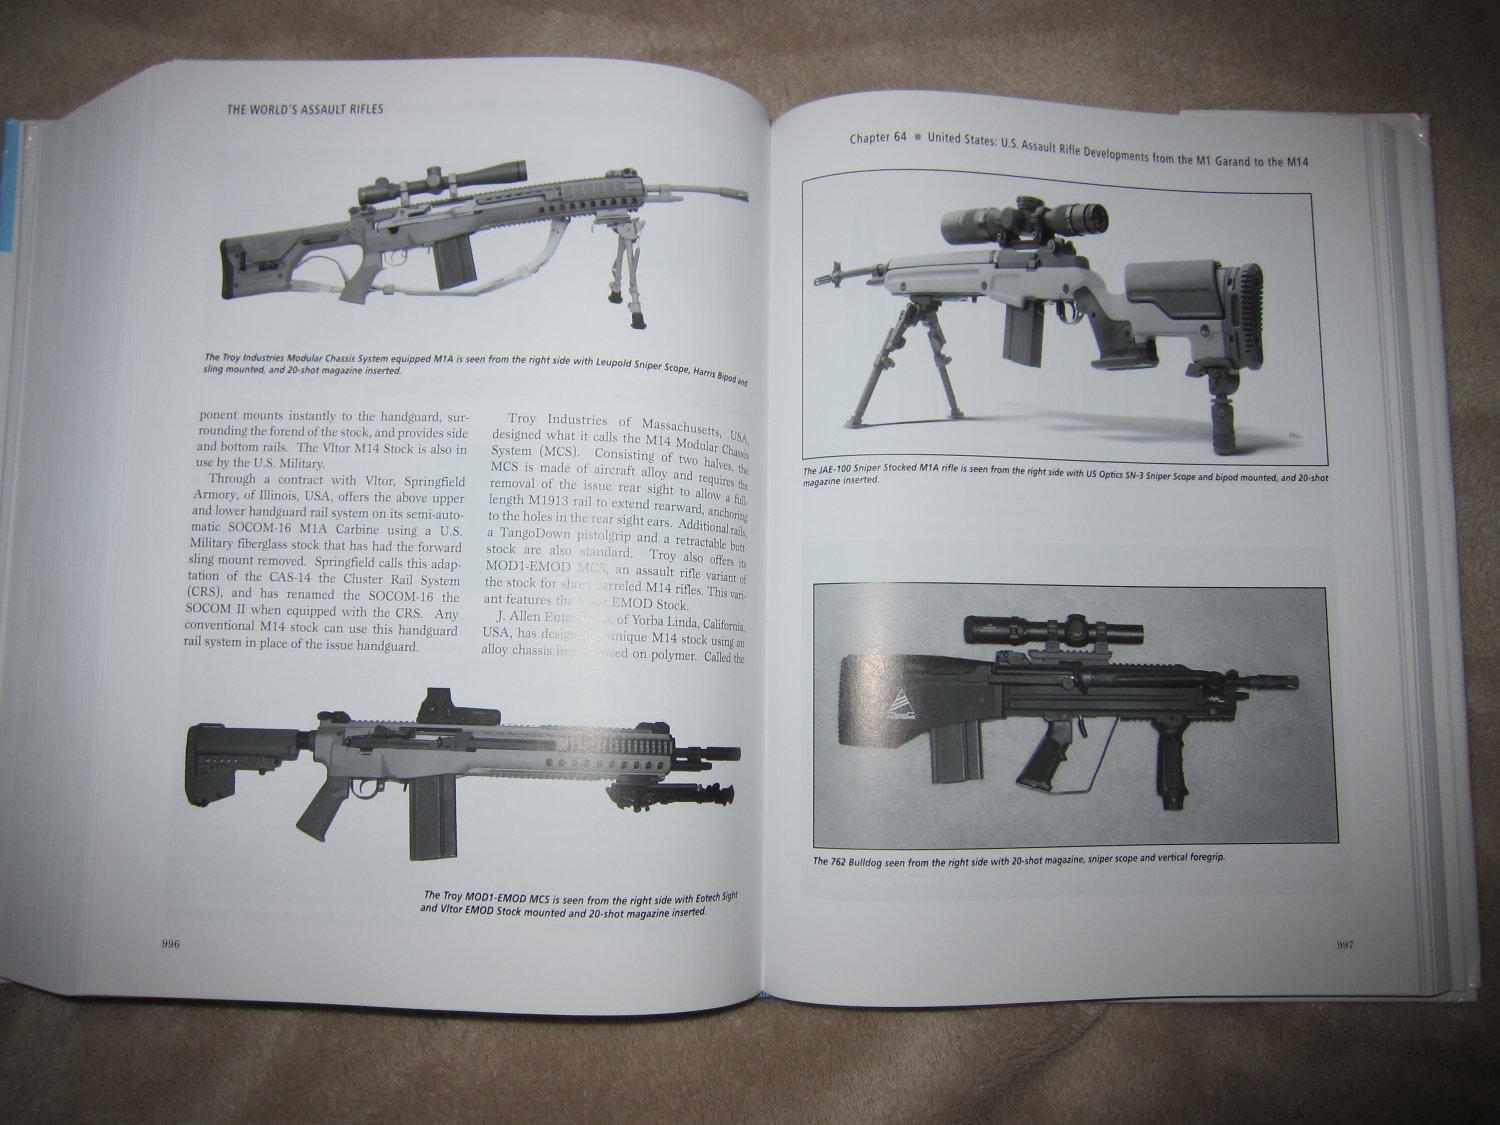 Assault Rifles of the World Book Gary Paul Johnston 5 <!  :en  >The Worlds Assault Rifles: Best and Most Complete Book on Military Infantry Assault Rifles (and Battle Rifles) Ever Written?  DefenseReview (DR) Highly Recommends It!<!  :  >